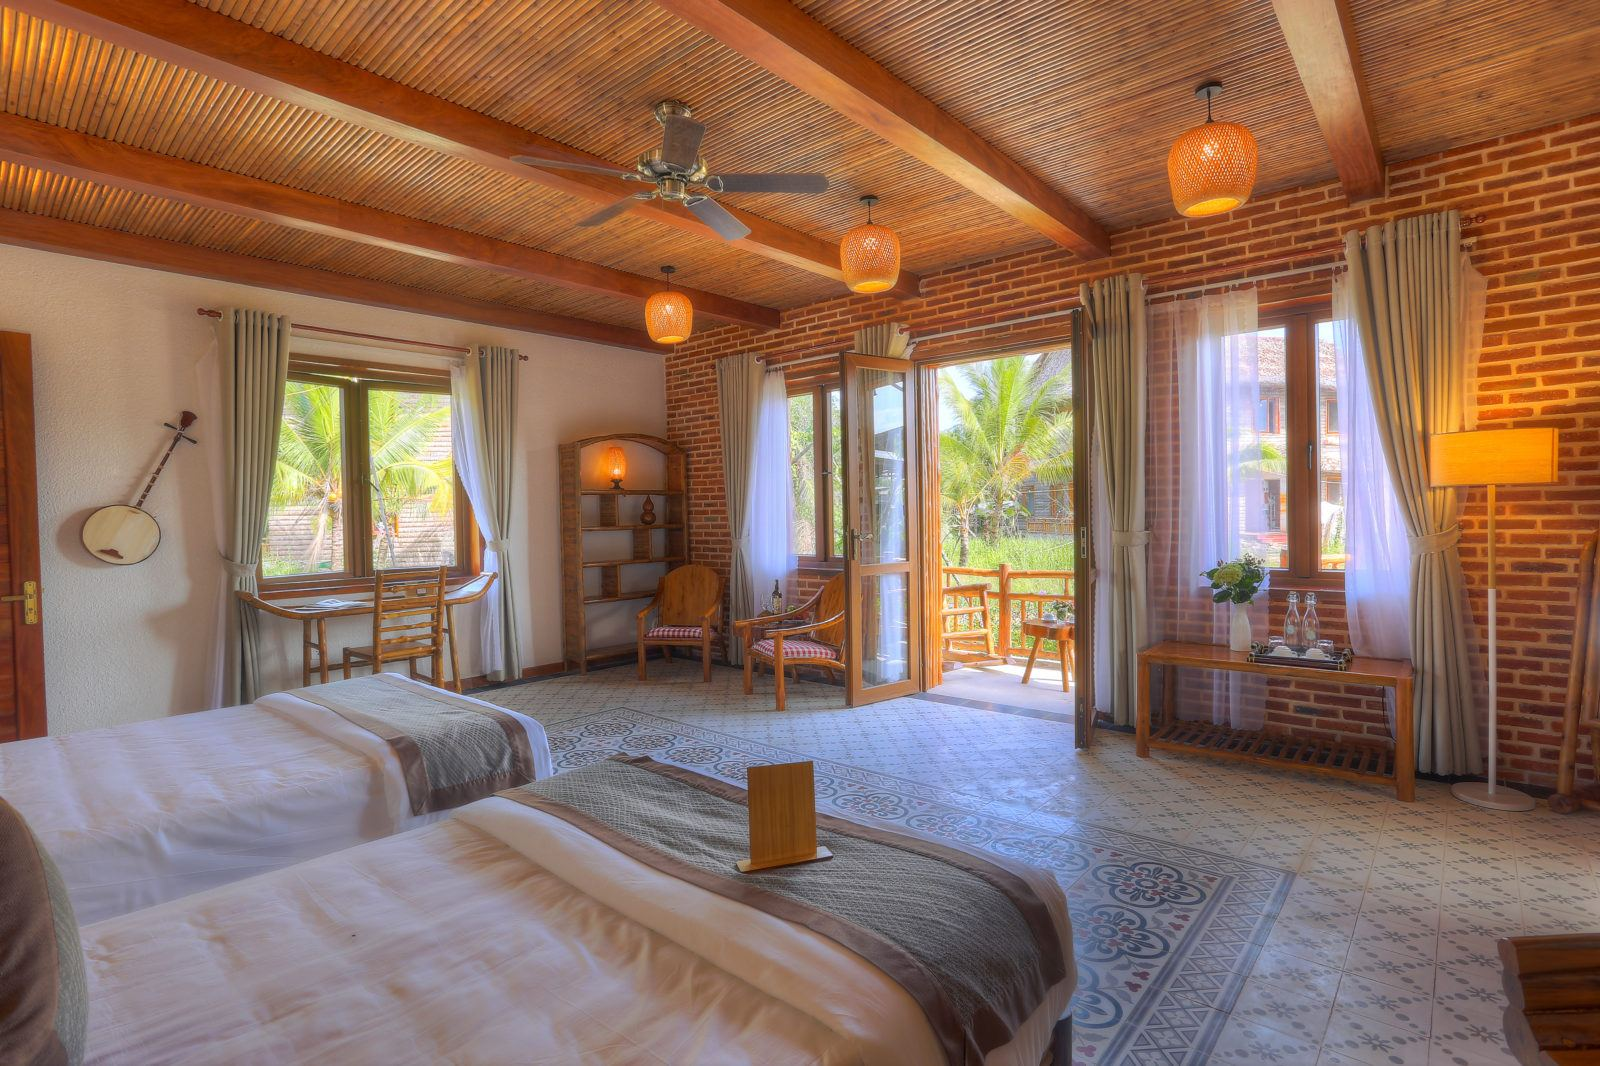 The Mekong Delta welcomes Can Tho Ecolodge, an Eco luxury accommodation in South Vietnam3